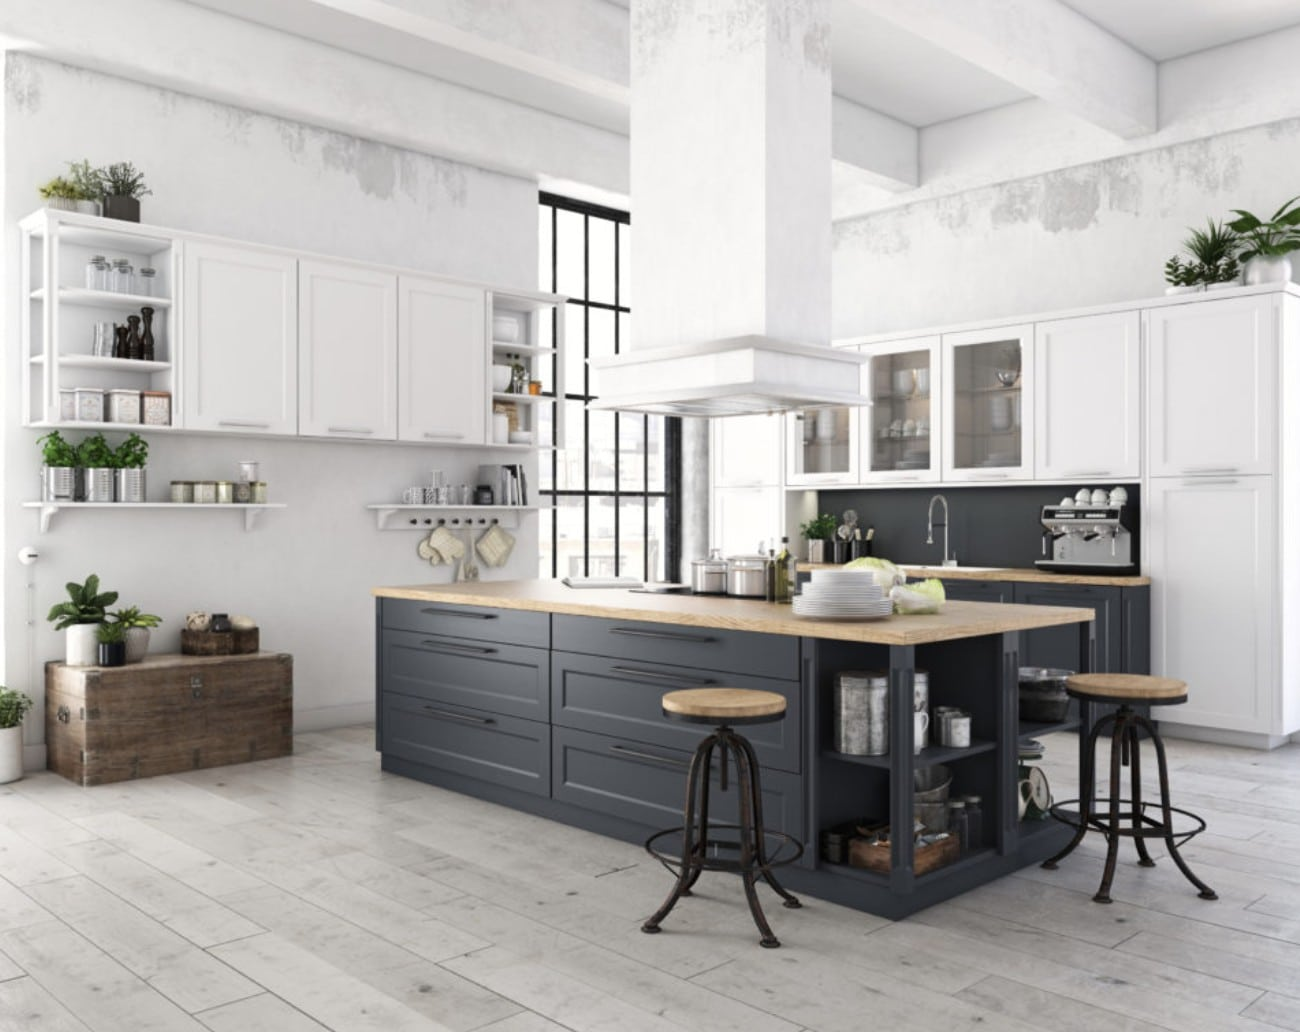 Kitchen Remodel Cost in New York City